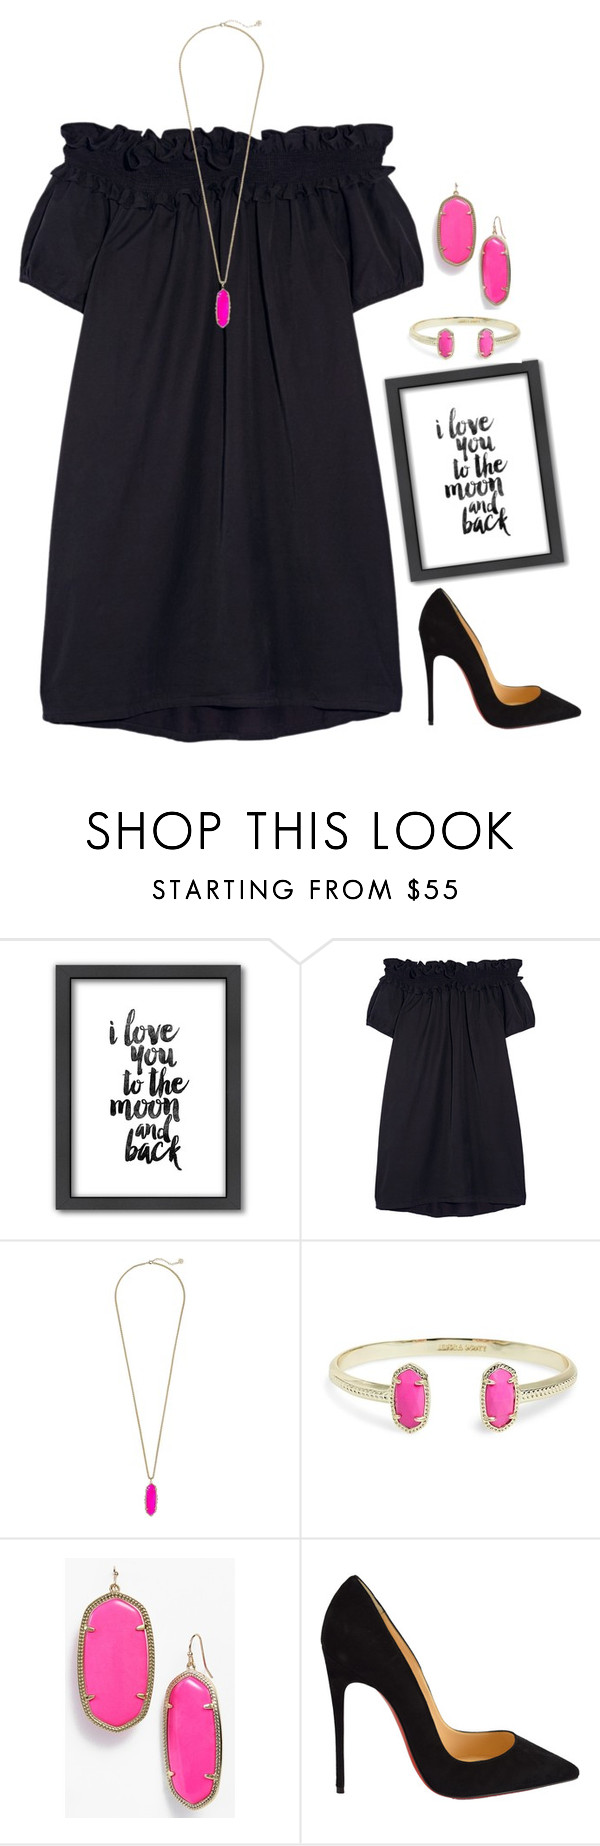 """""""{oh how I love love}"""" by lydia-hh ❤ liked on Polyvore featuring Americanflat, Clu, Kendra Scott, Christian Louboutin, women's clothing, women, female, woman, misses and juniors"""